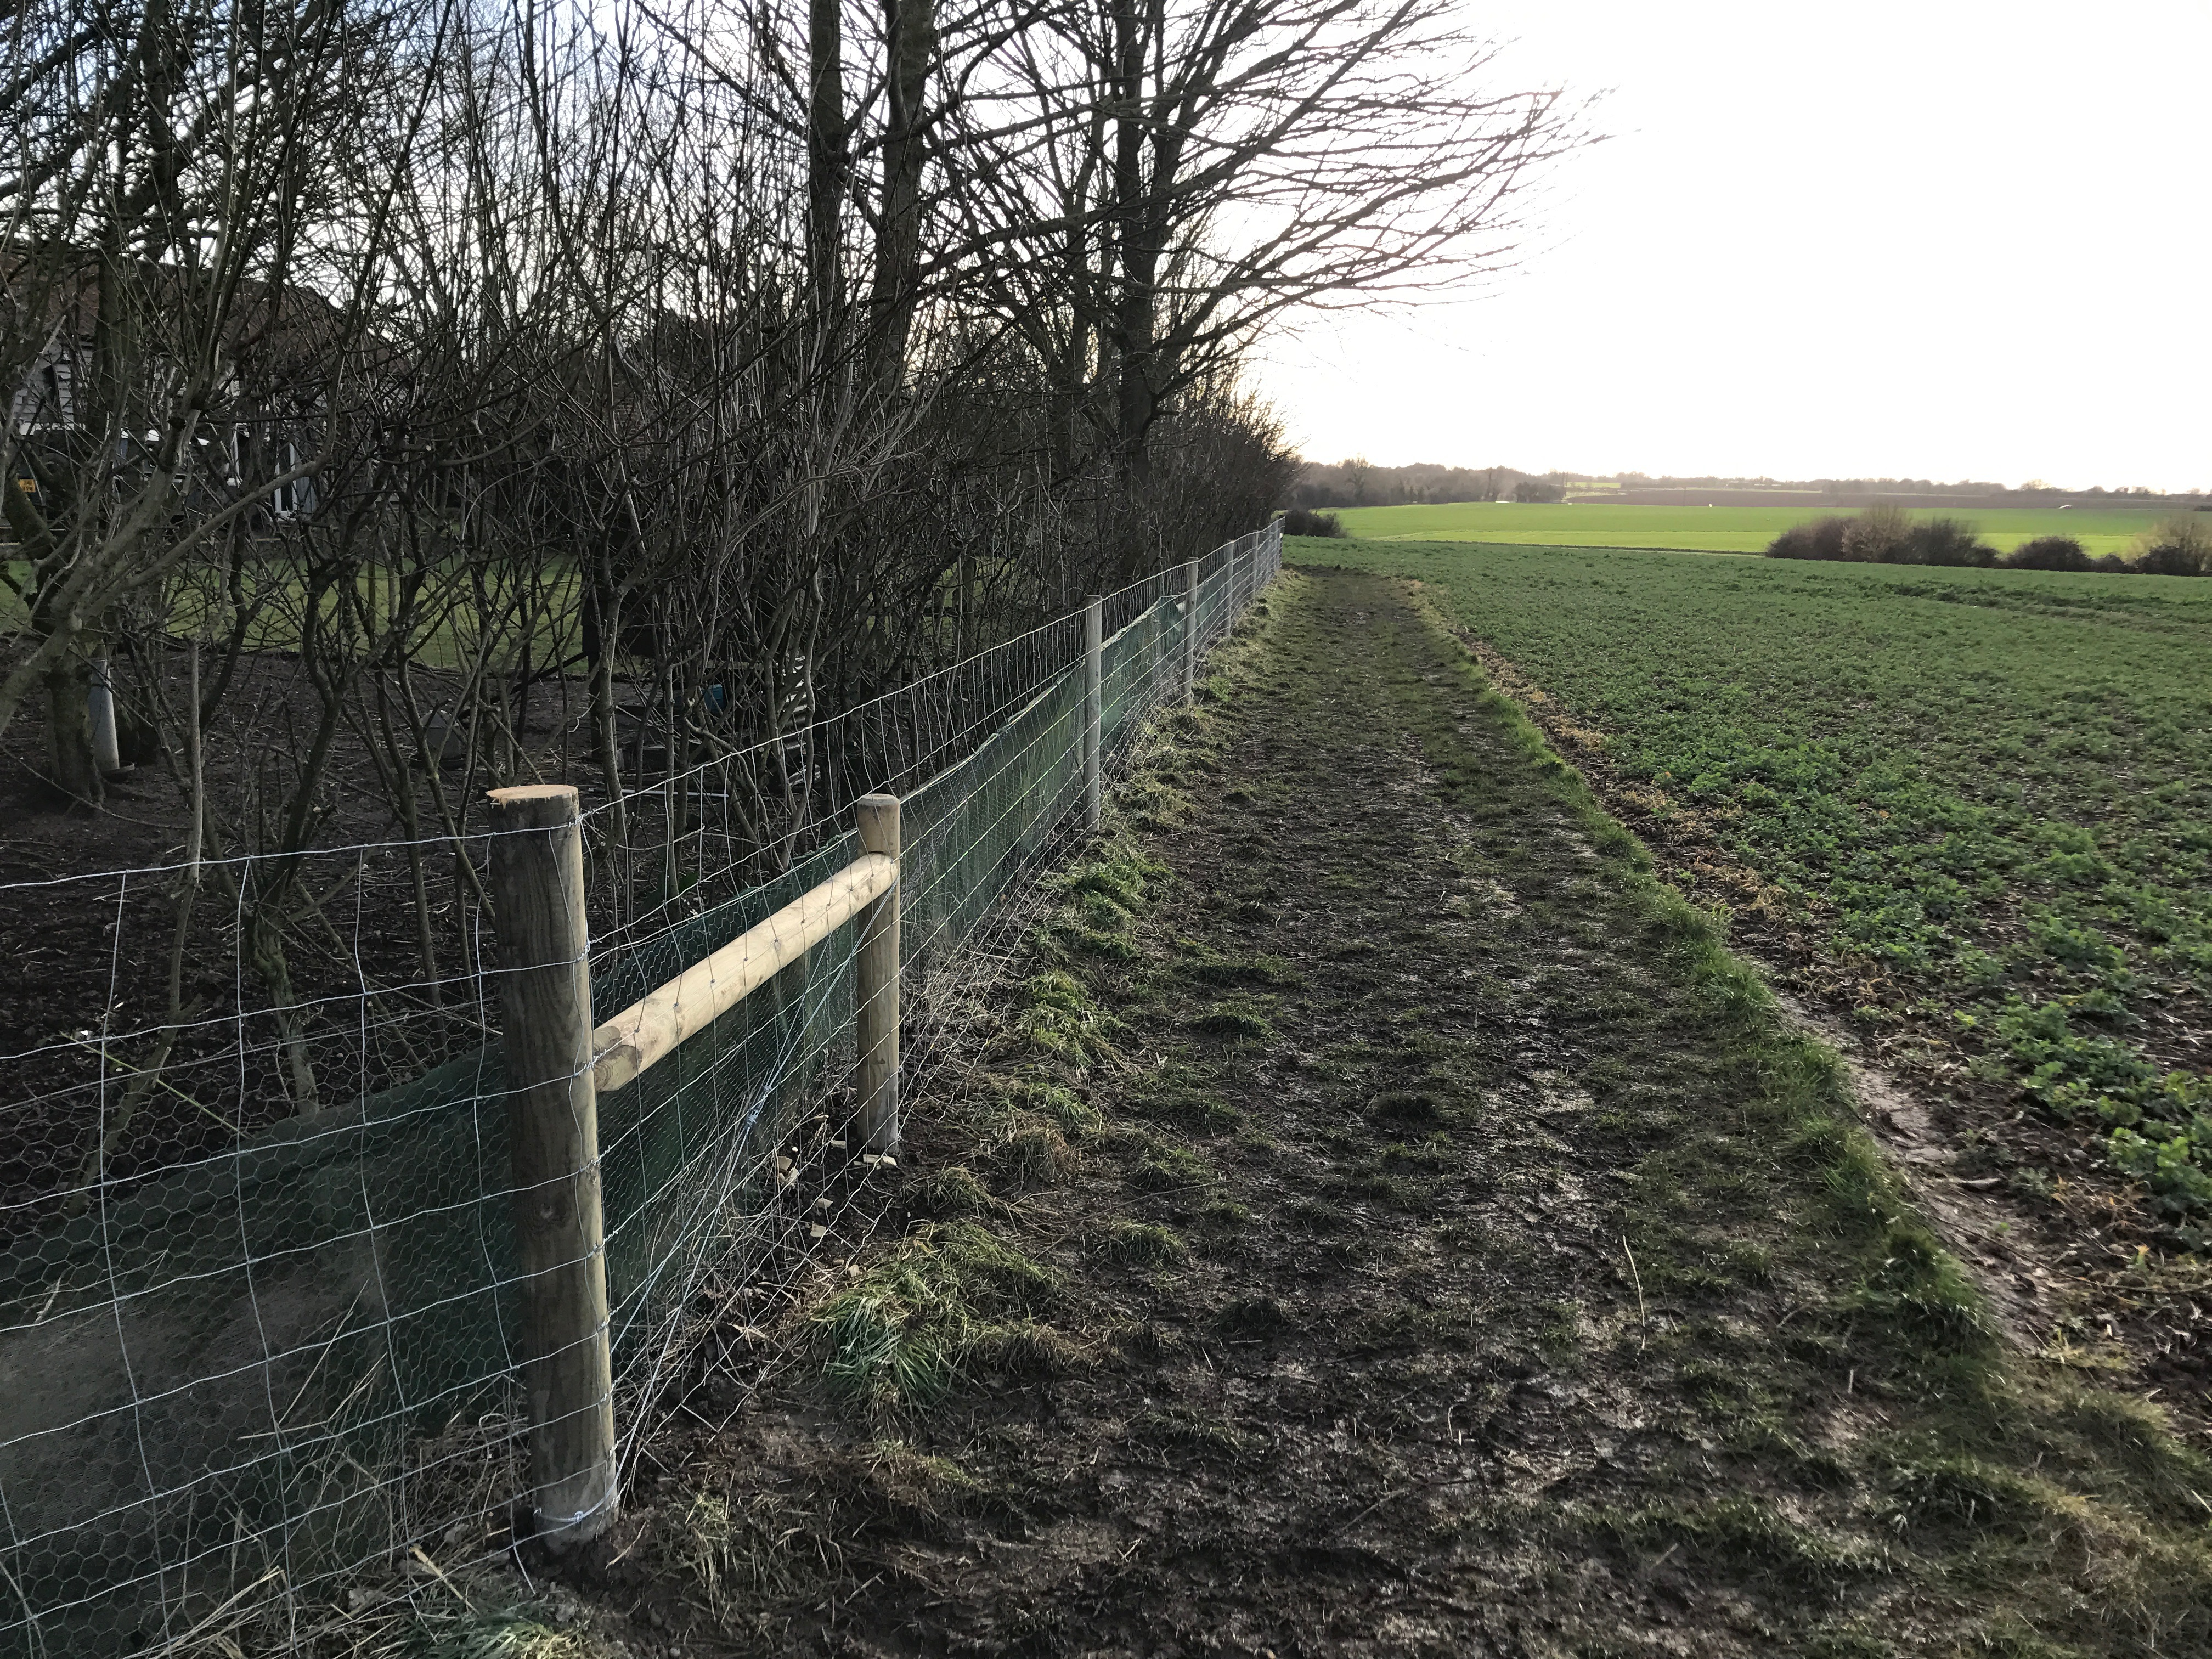 Stock fencing for agriculture